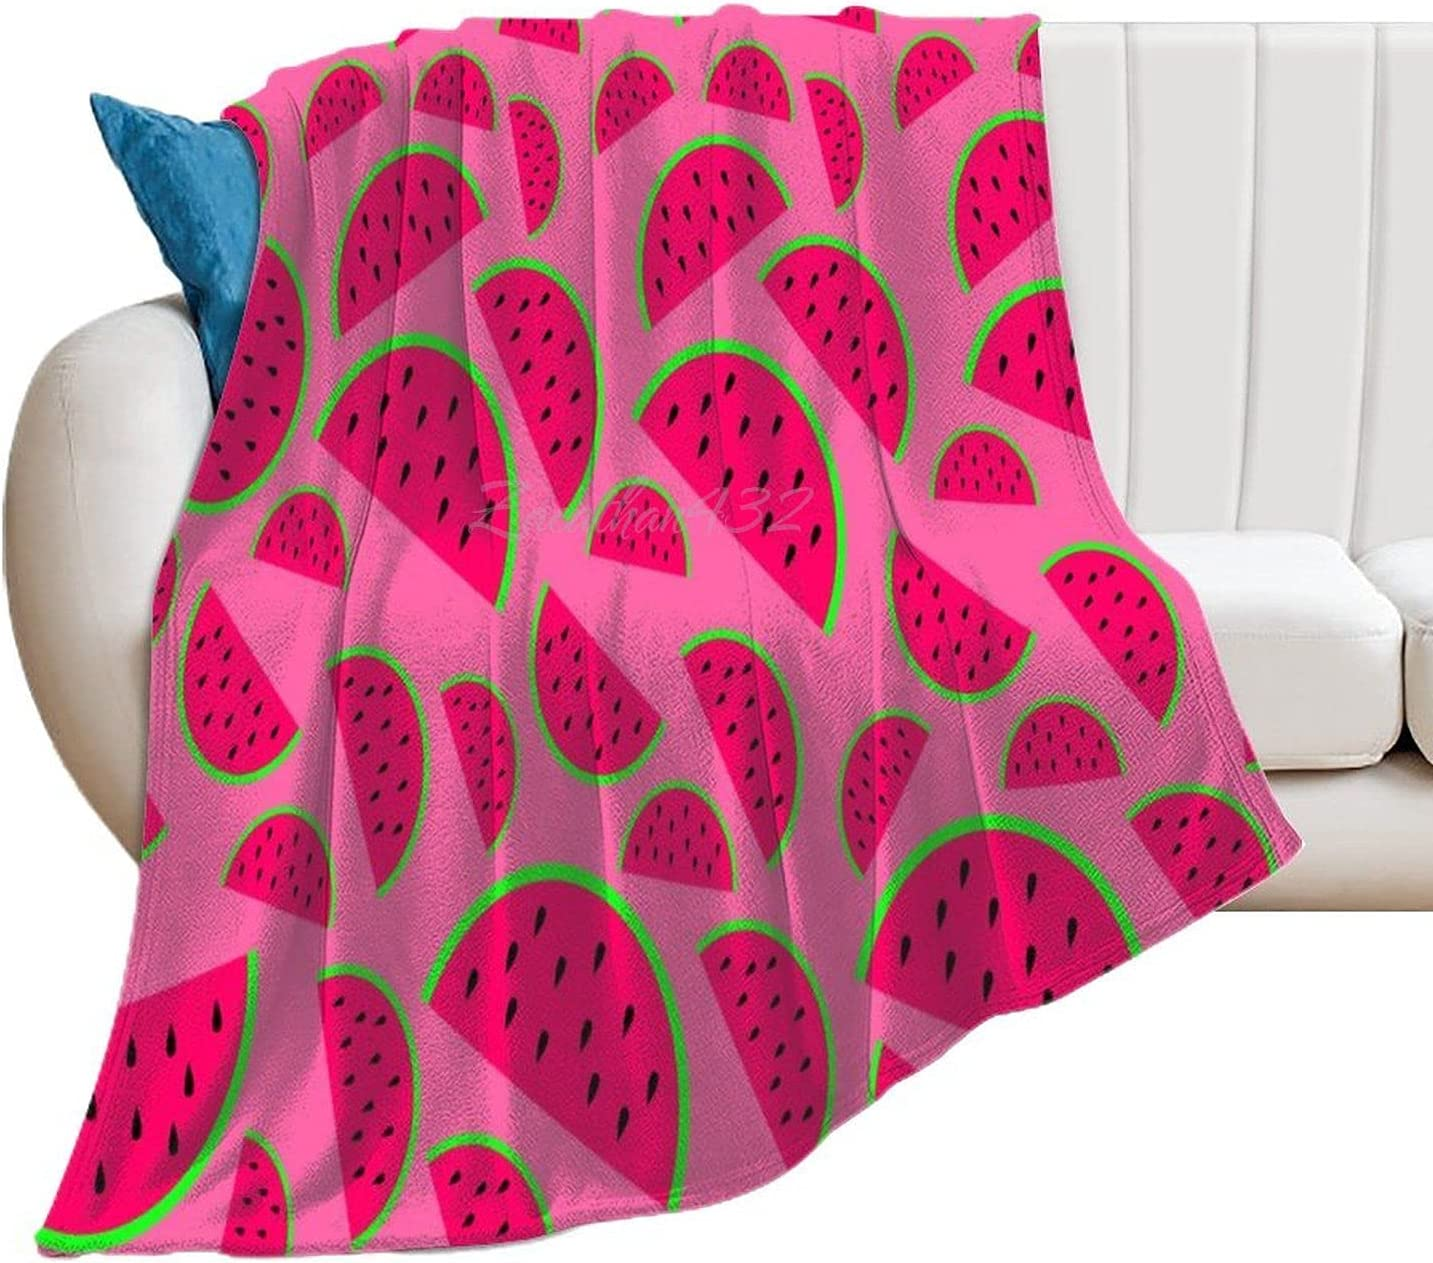 Novelty Plush Blanket Carpet Watermelon Long-awaited Throw Outlet ☆ Free Shipping Pattern